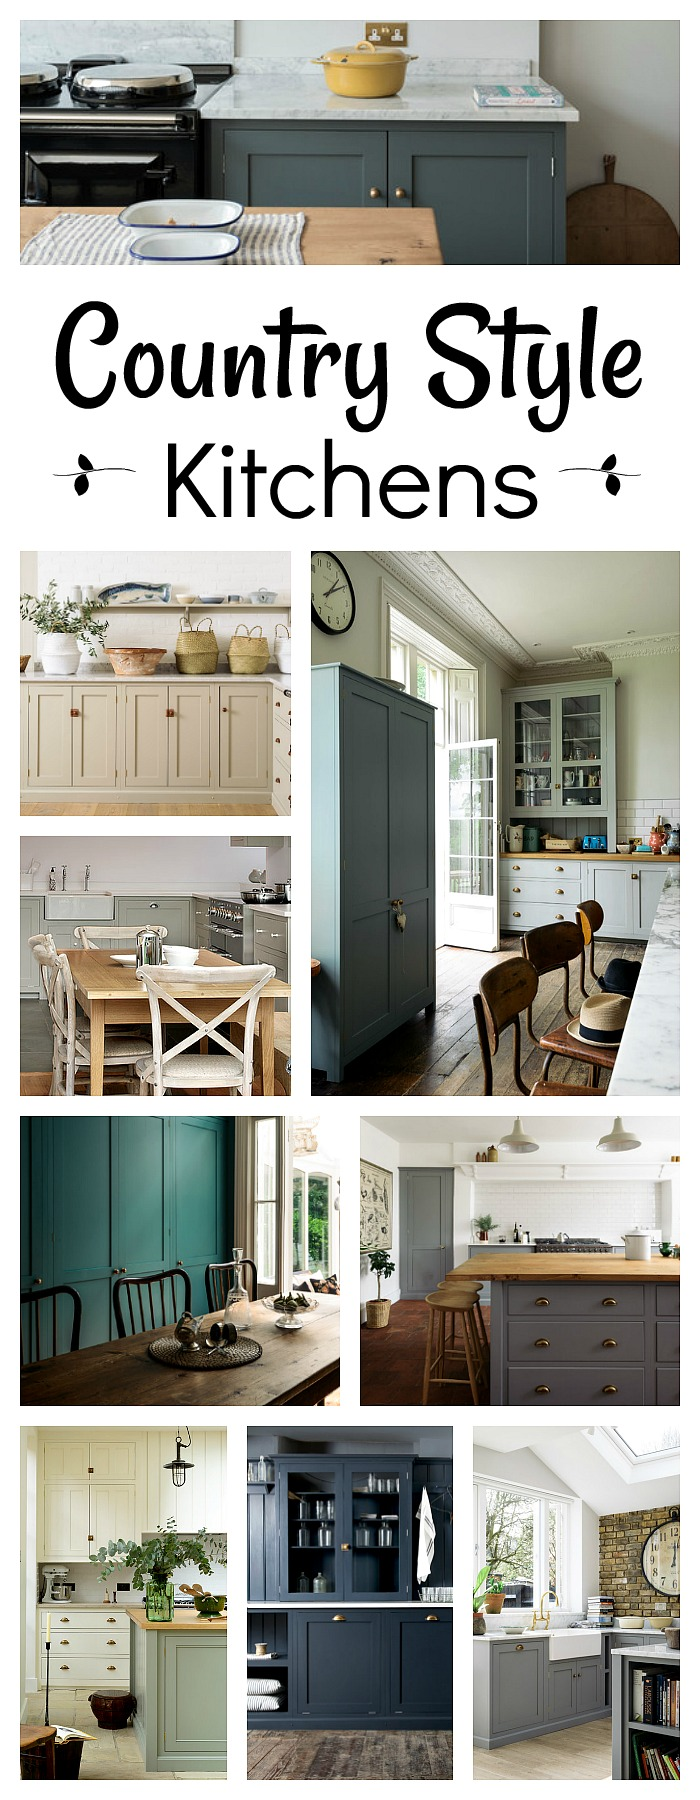 18 Country Style Kitchens